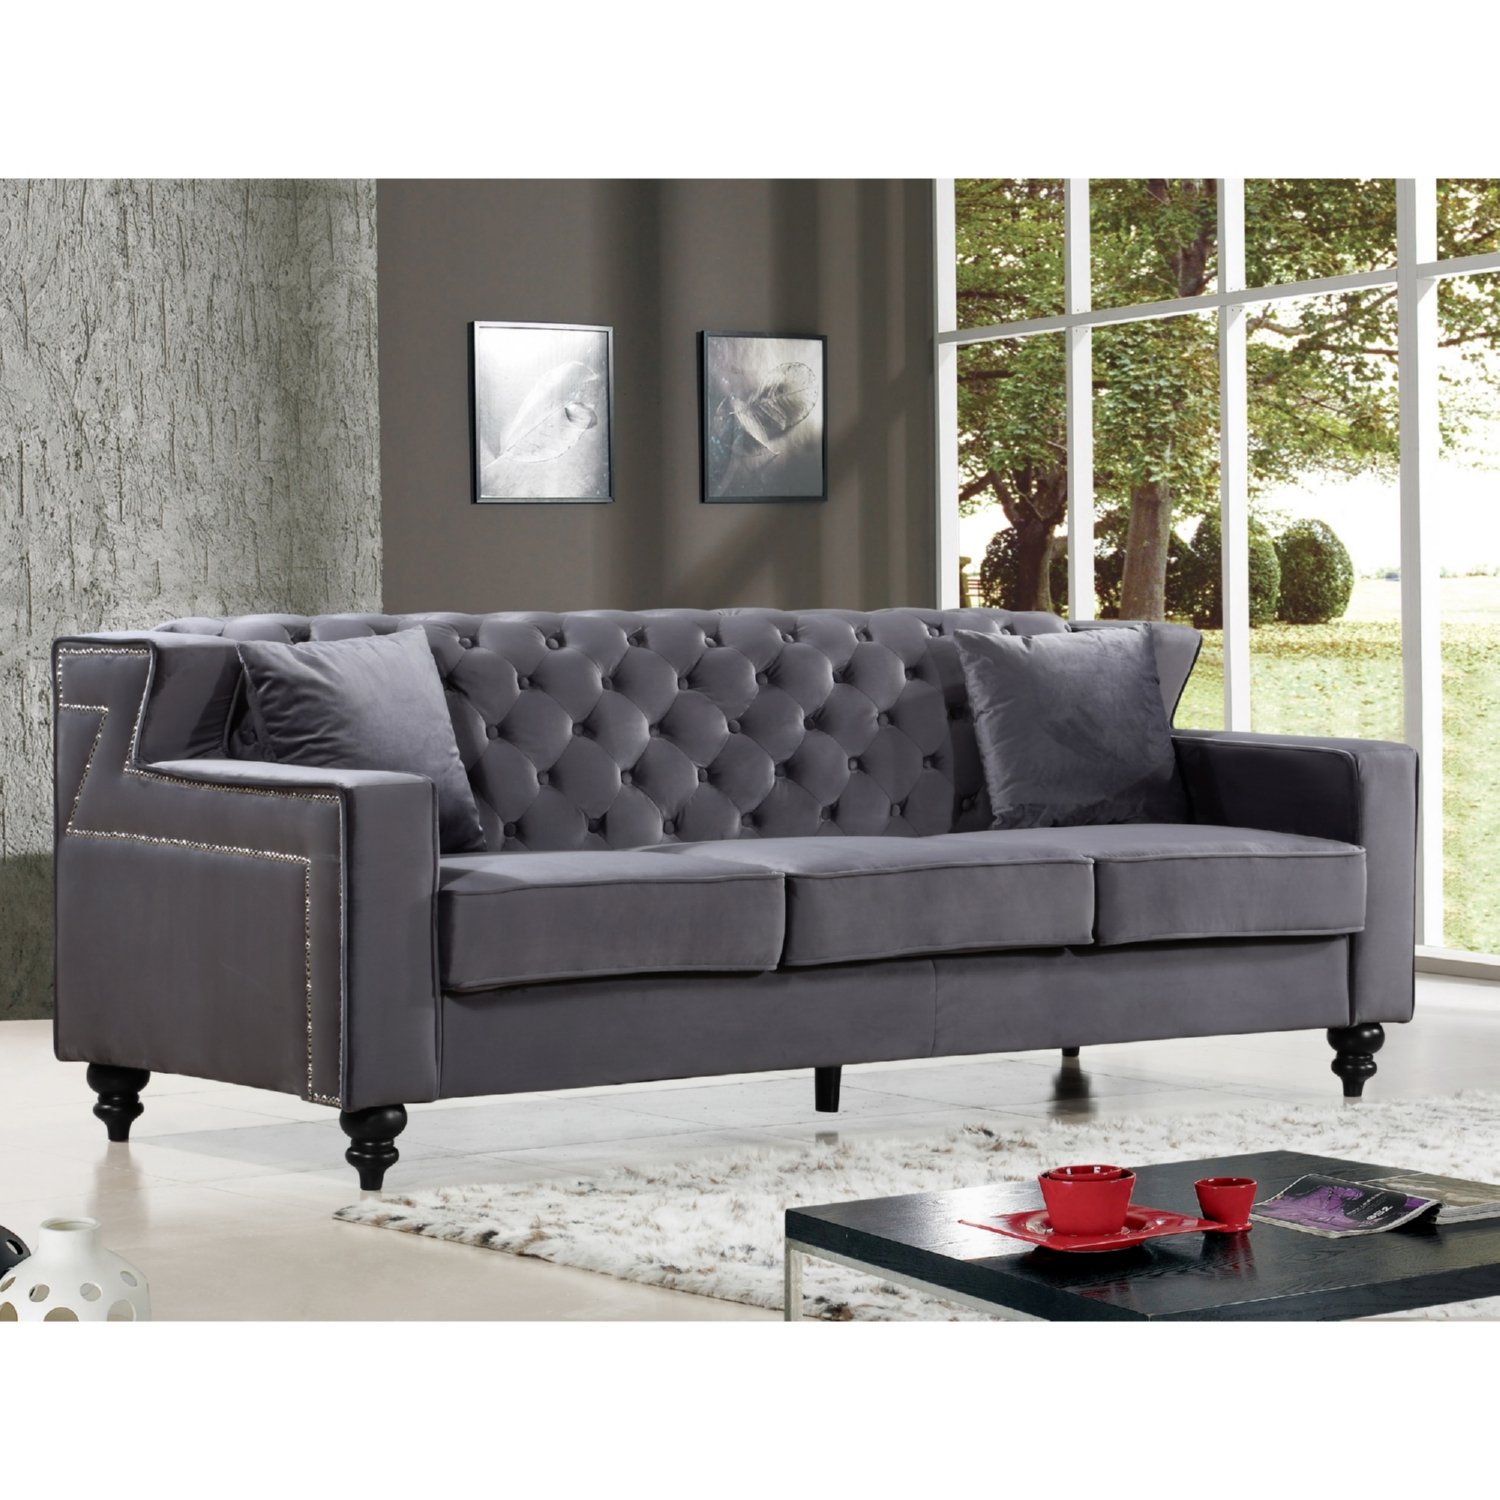 navy blue velvet sofa canada designer sets for sale pune tufted chloe